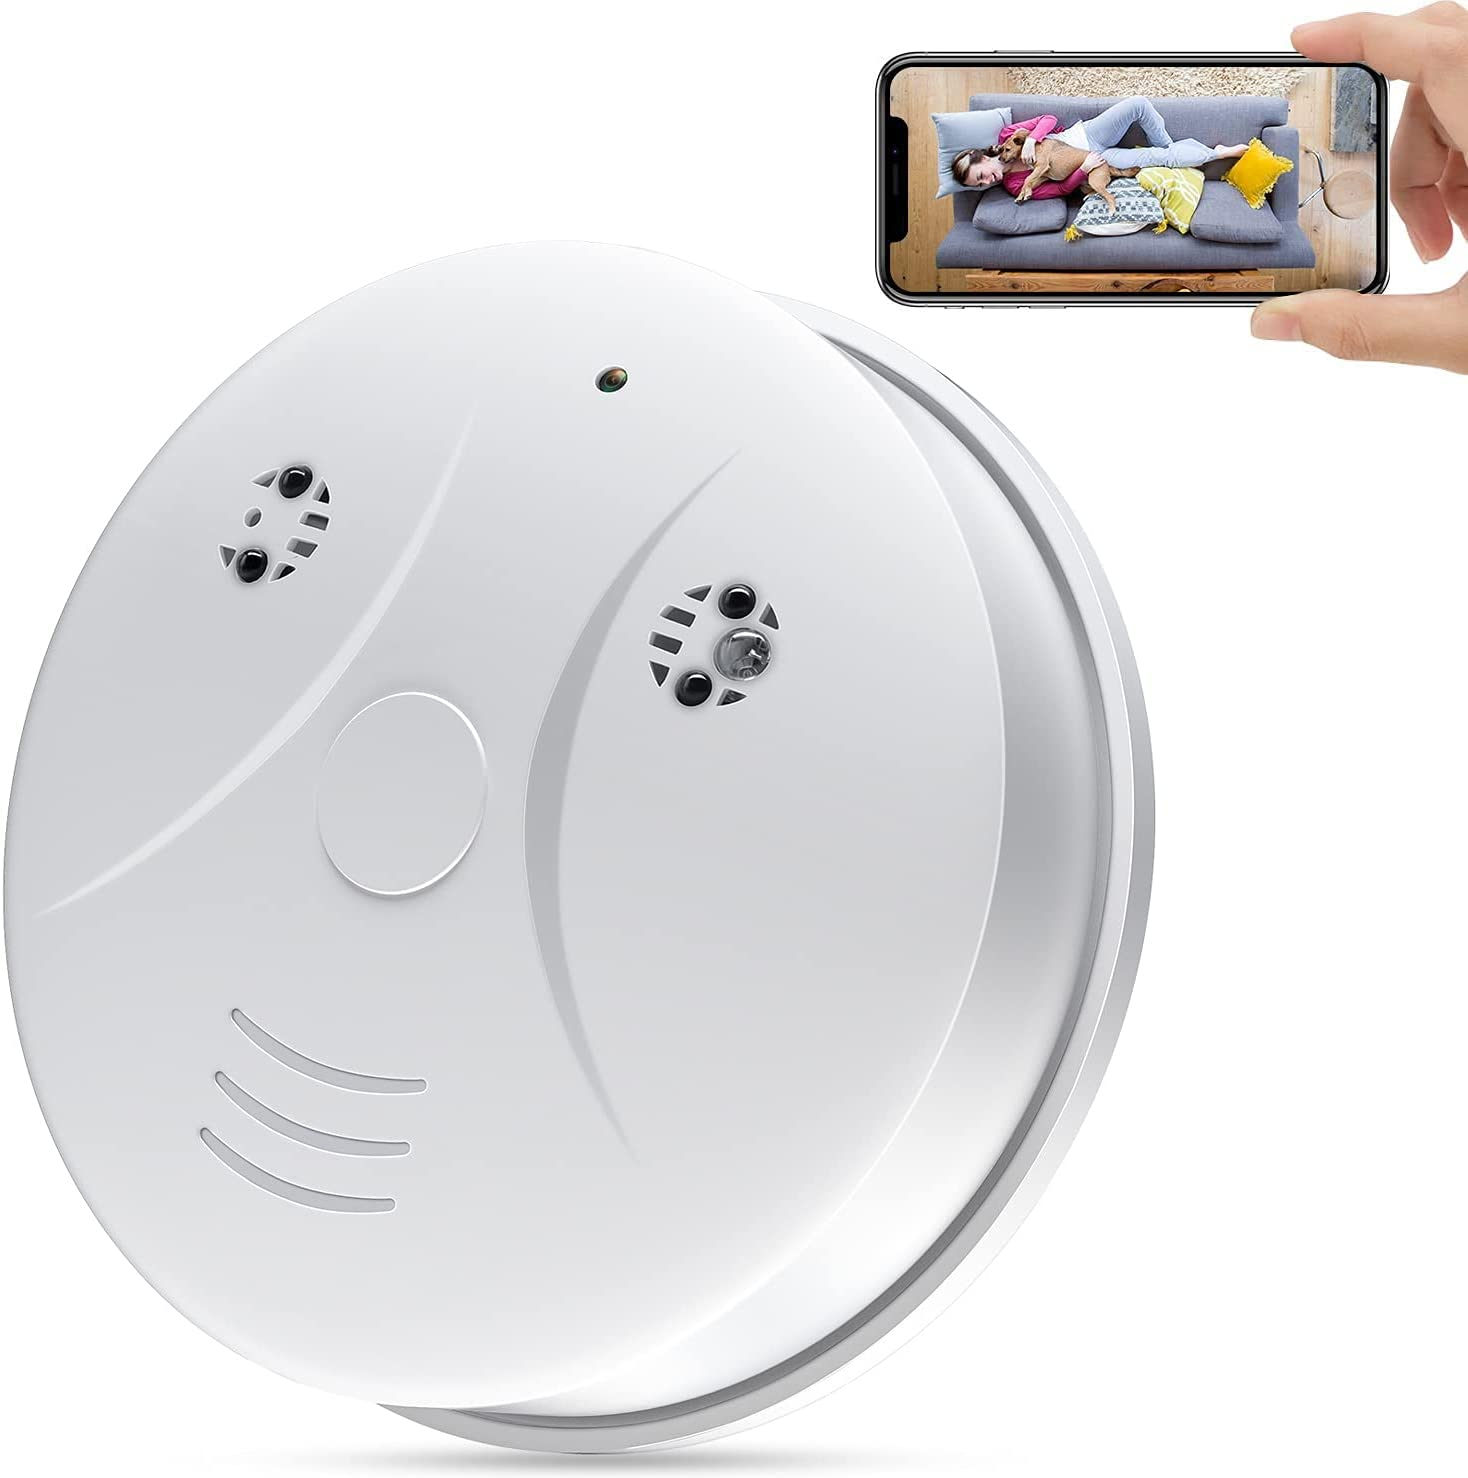 4K Hidden Camera Smoke WiFi,1080P HD Baby Monitor Wireless Mini Spy Camera with Night Vision and Motion Sensing, Security Camera for Home Office